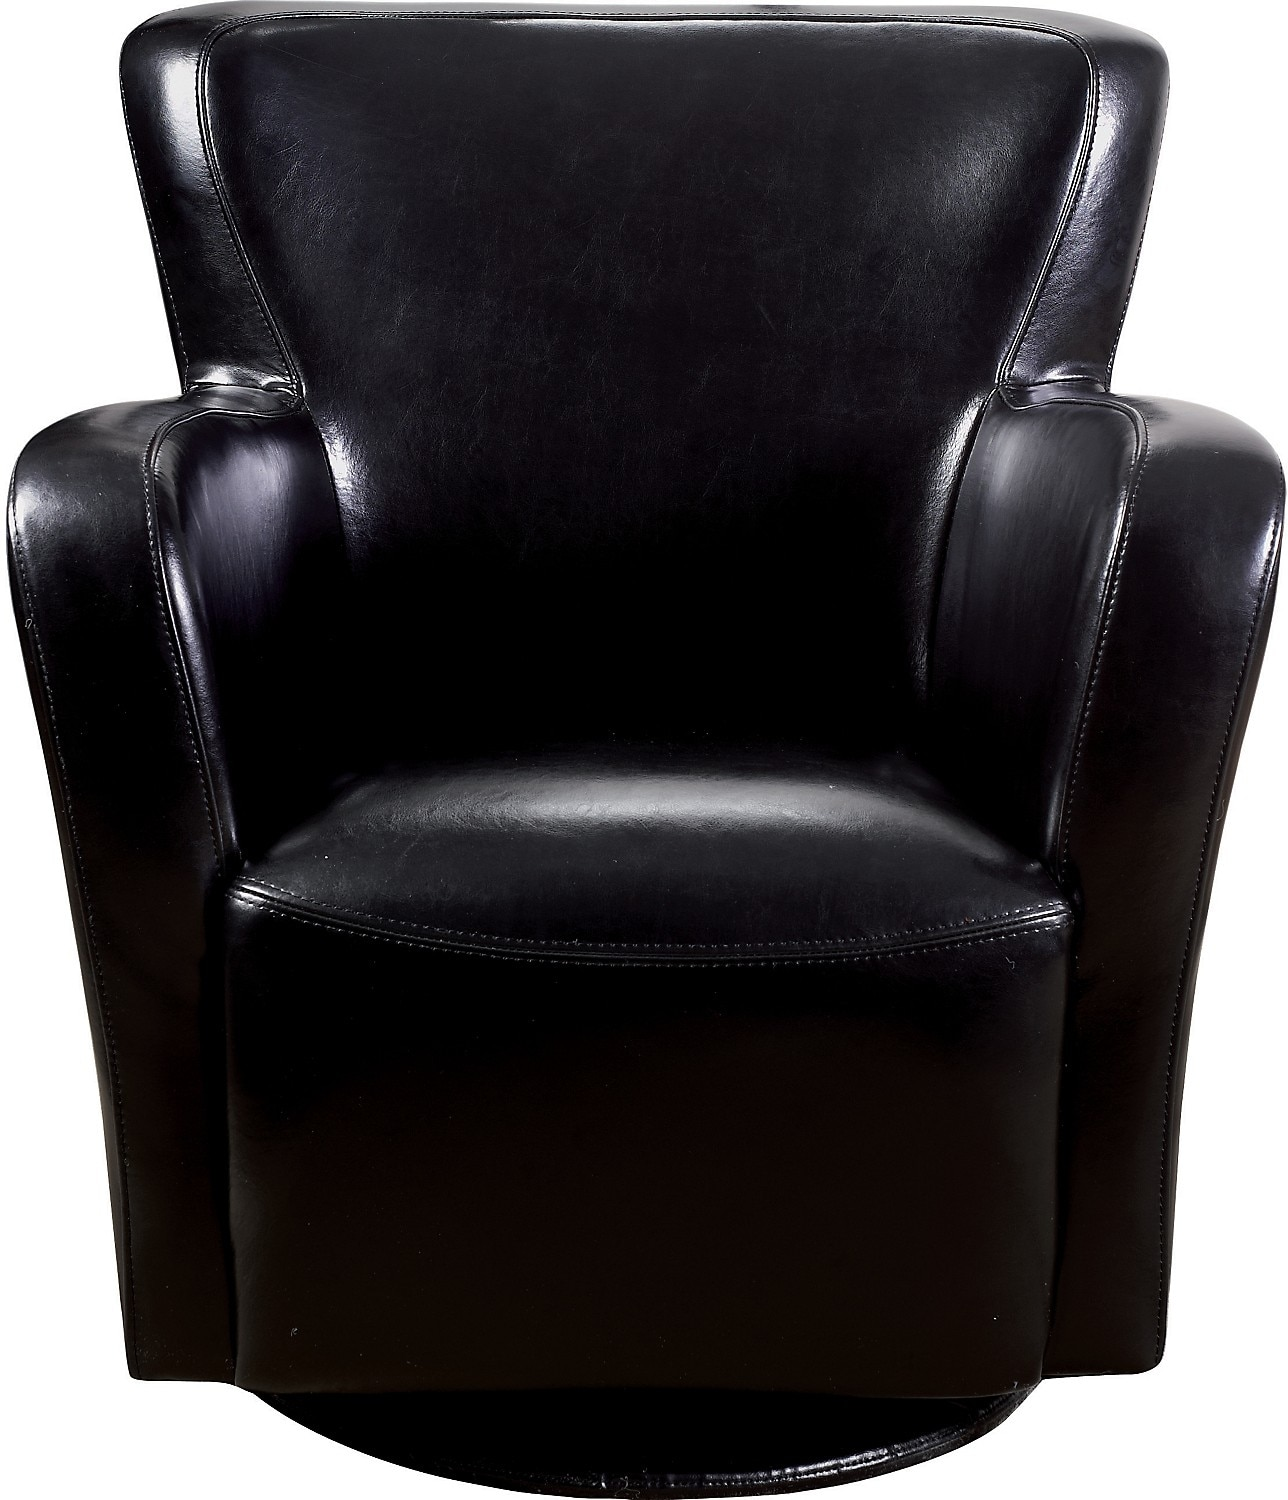 Living Room Furniture - Bonded Leather Swivel Chair - Black